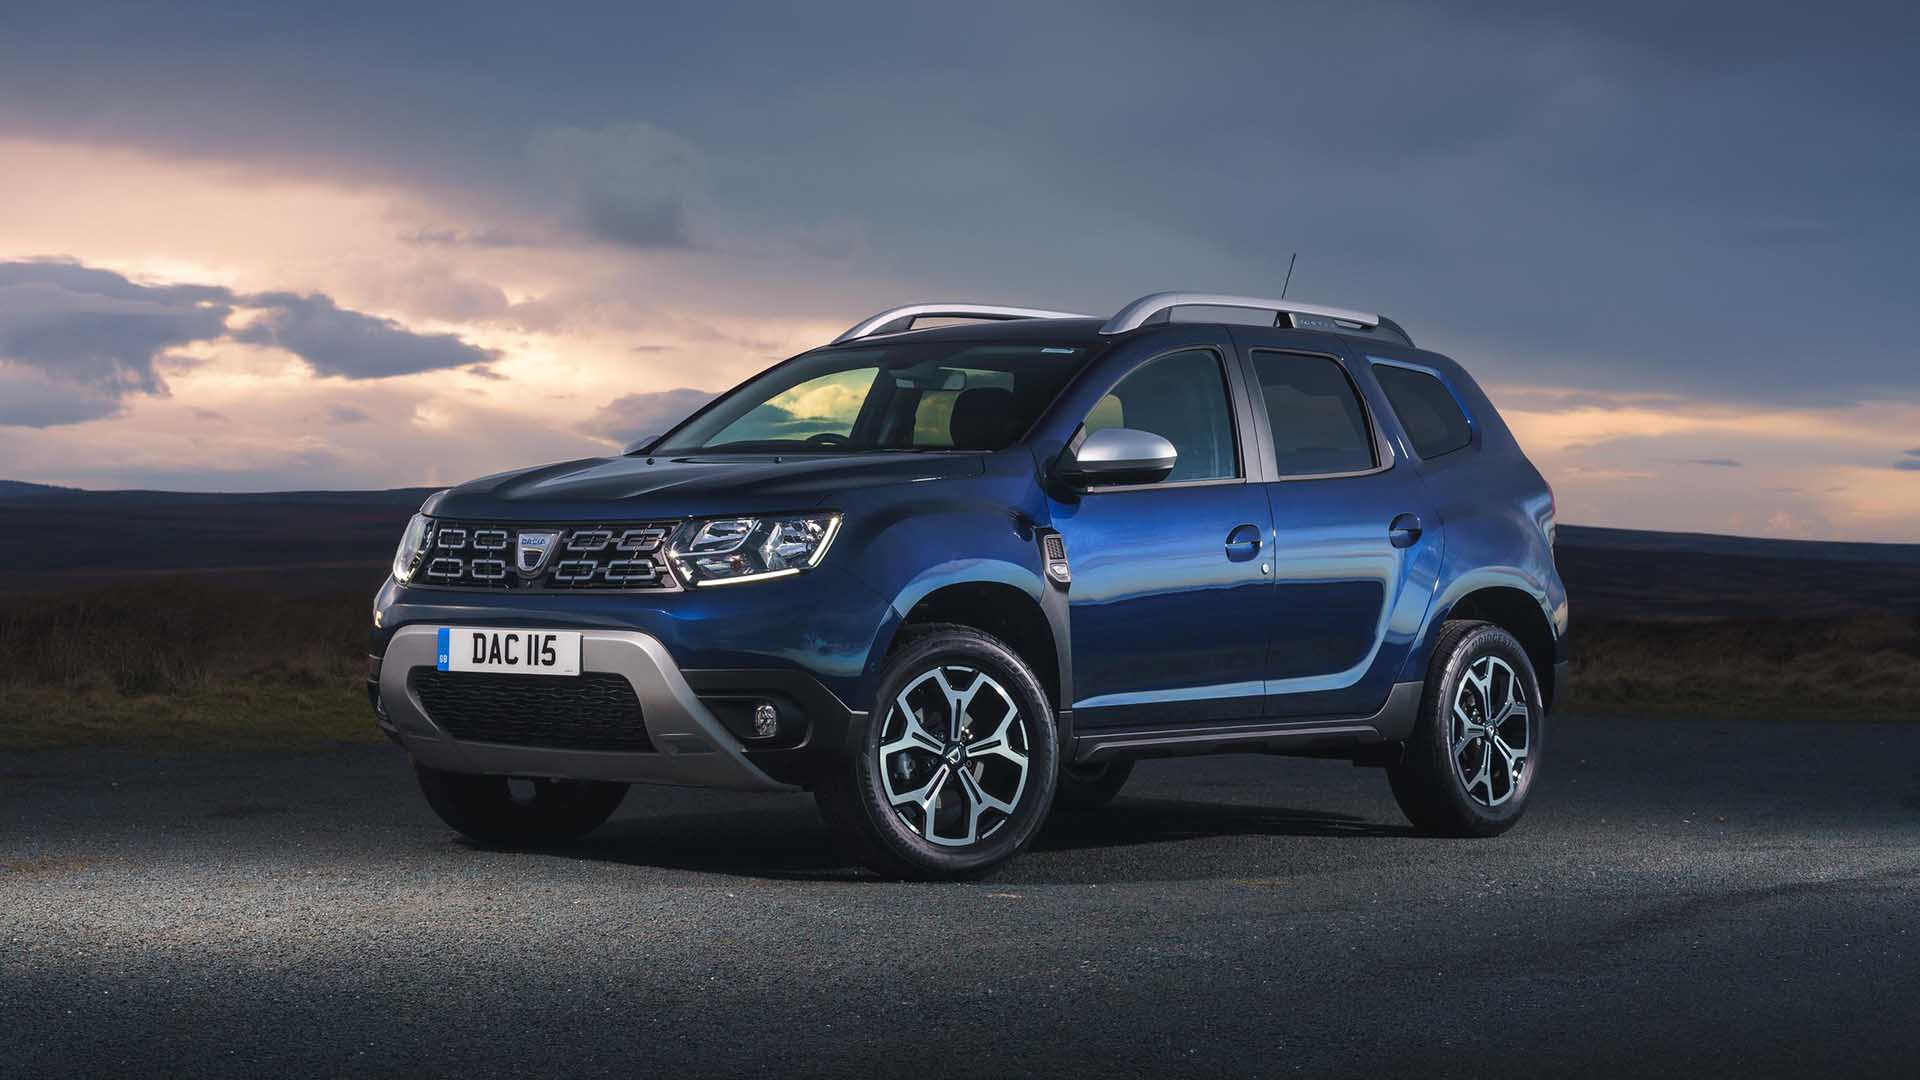 Dacia Duster – from £11,245